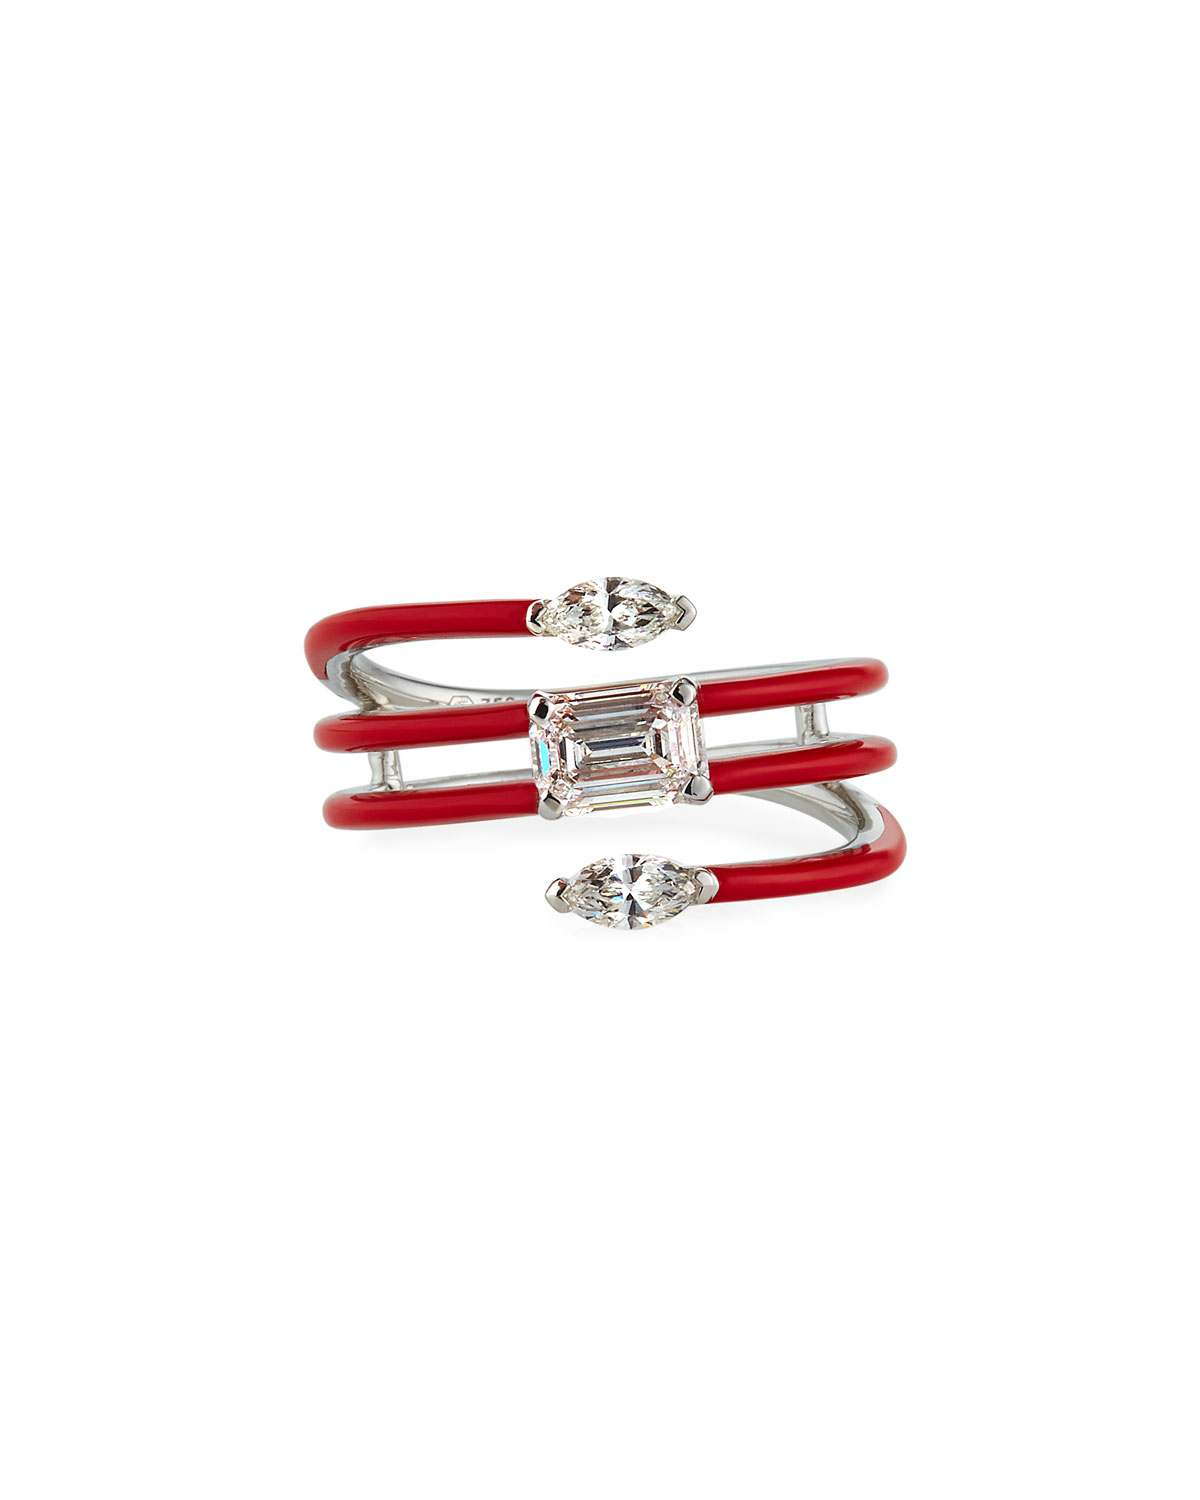 Etho Maria 18k White Gold Red Ceramic Diamond Coiled Ring, Size 6.5